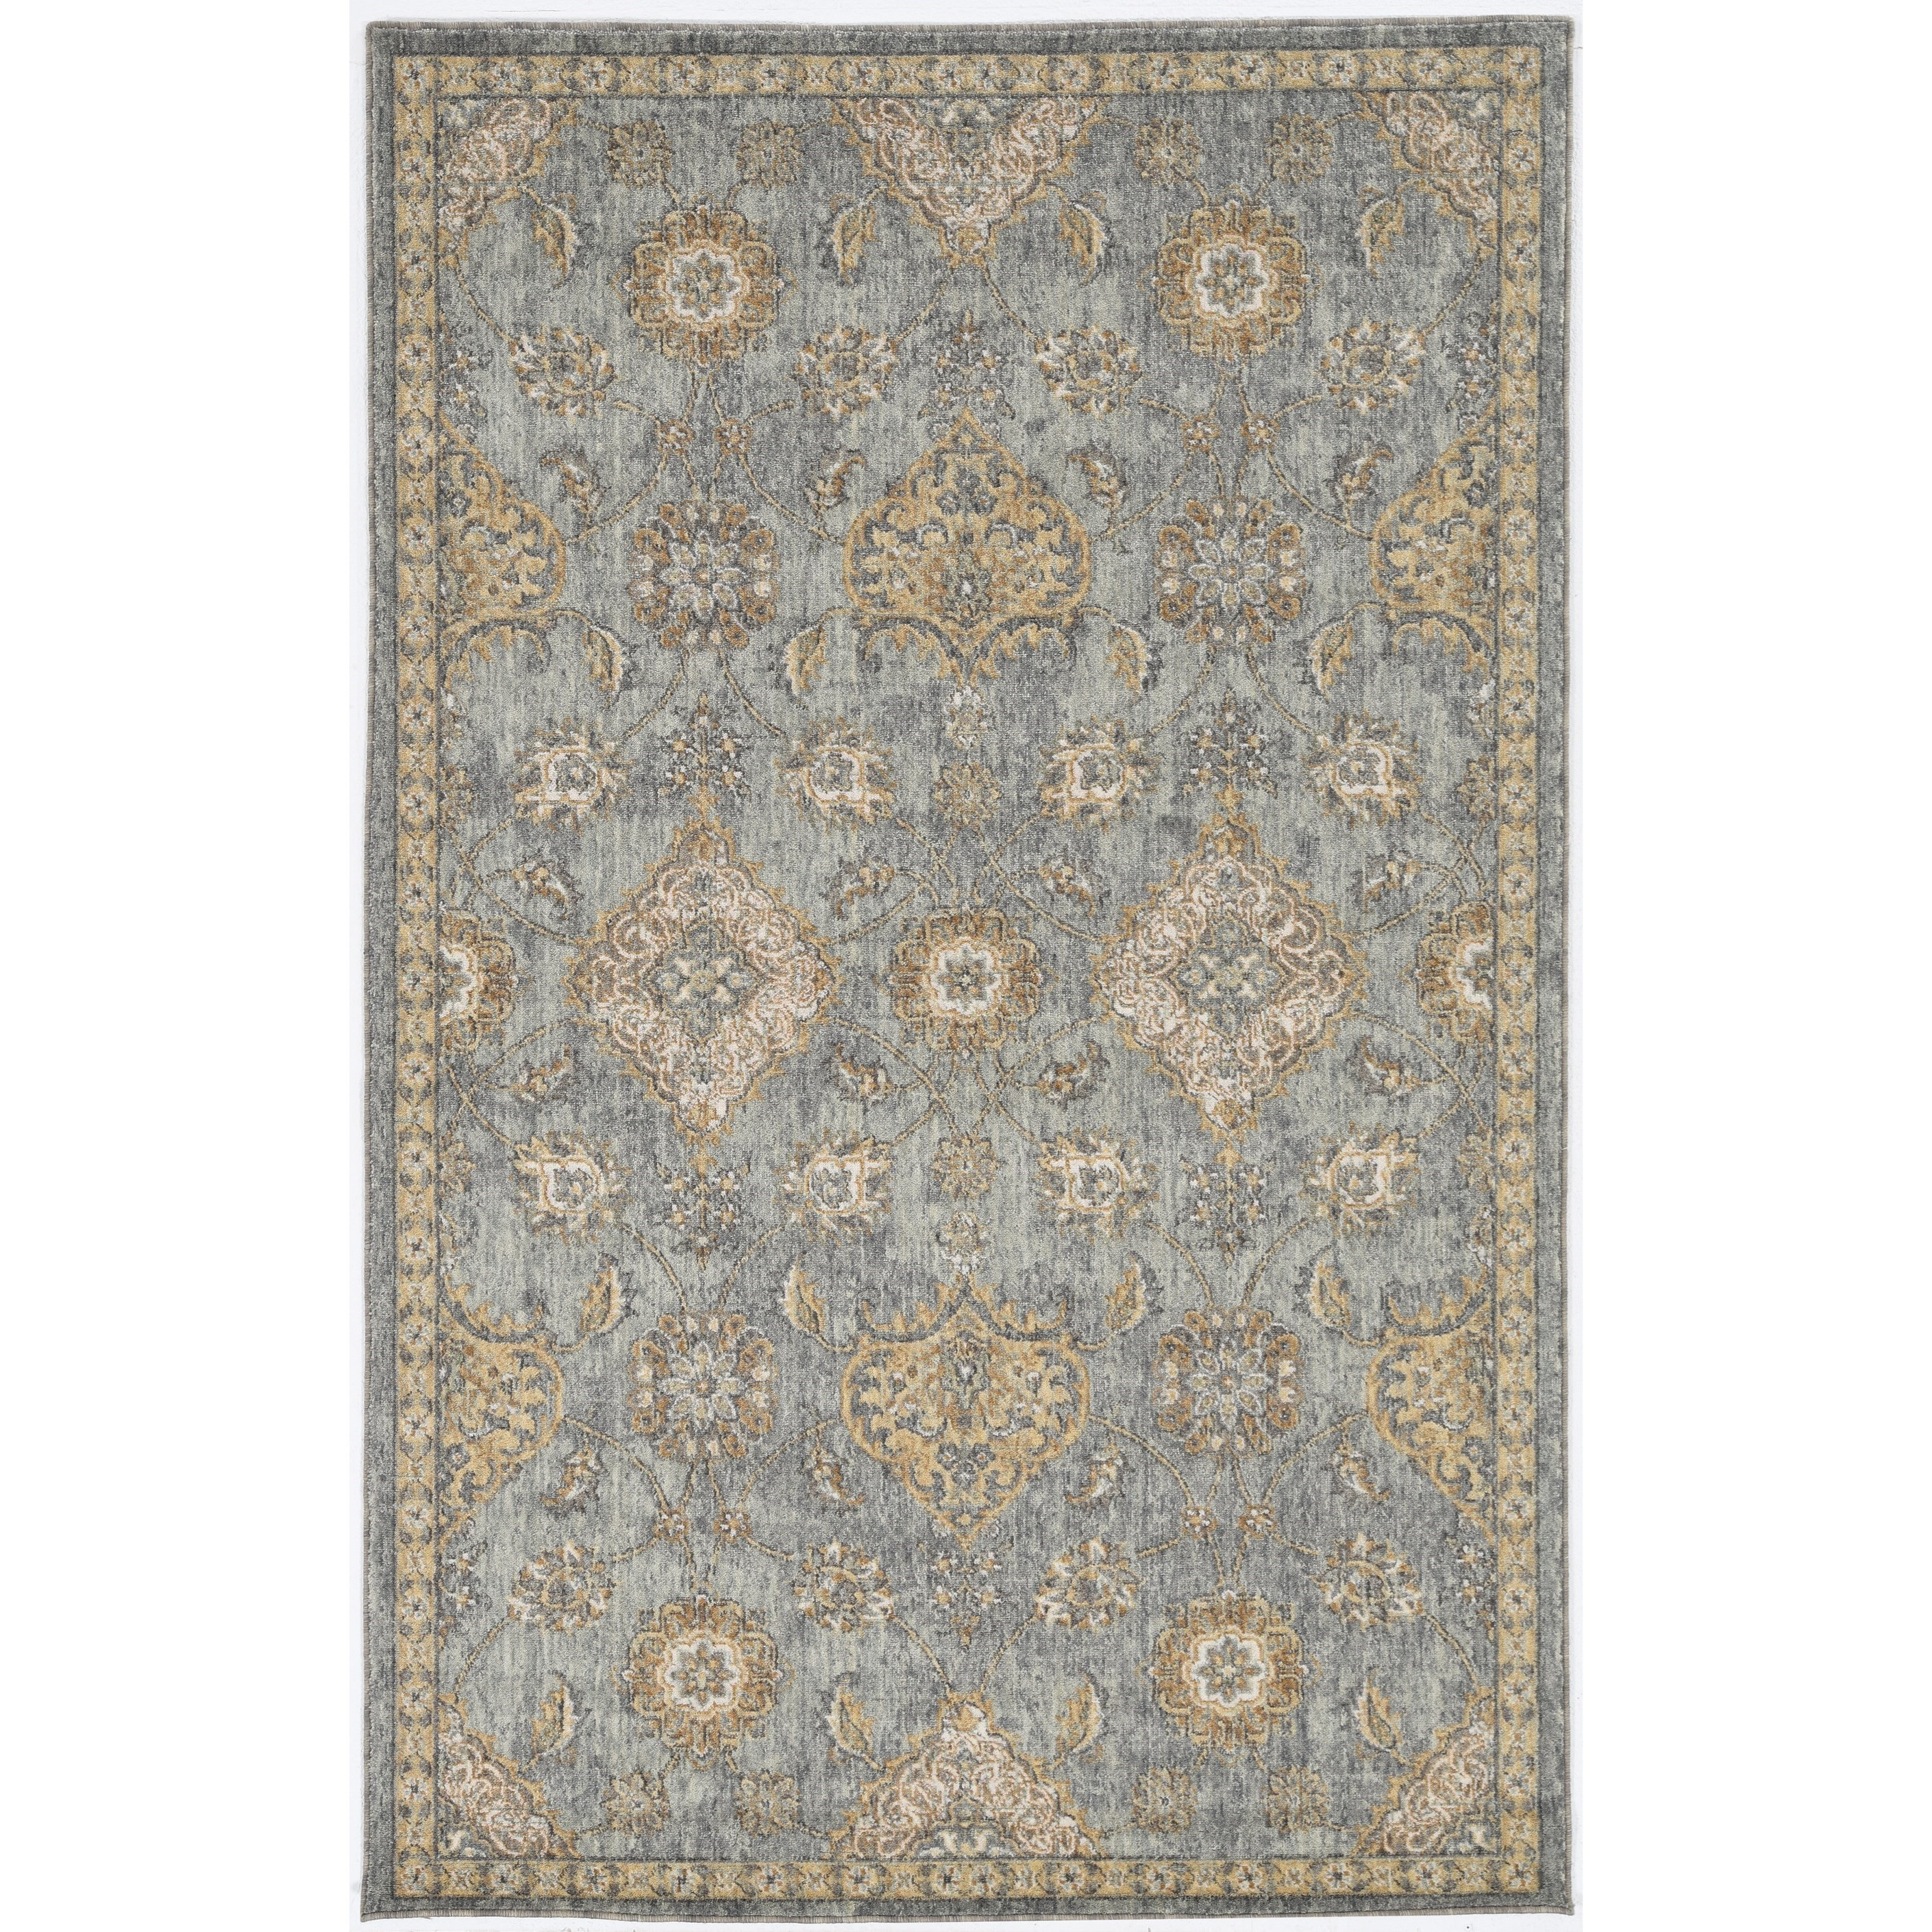 """Ria 2'3"""" x 7'6"""" Runner Sage Green Sofia Rug by Kas at Zak's Home"""